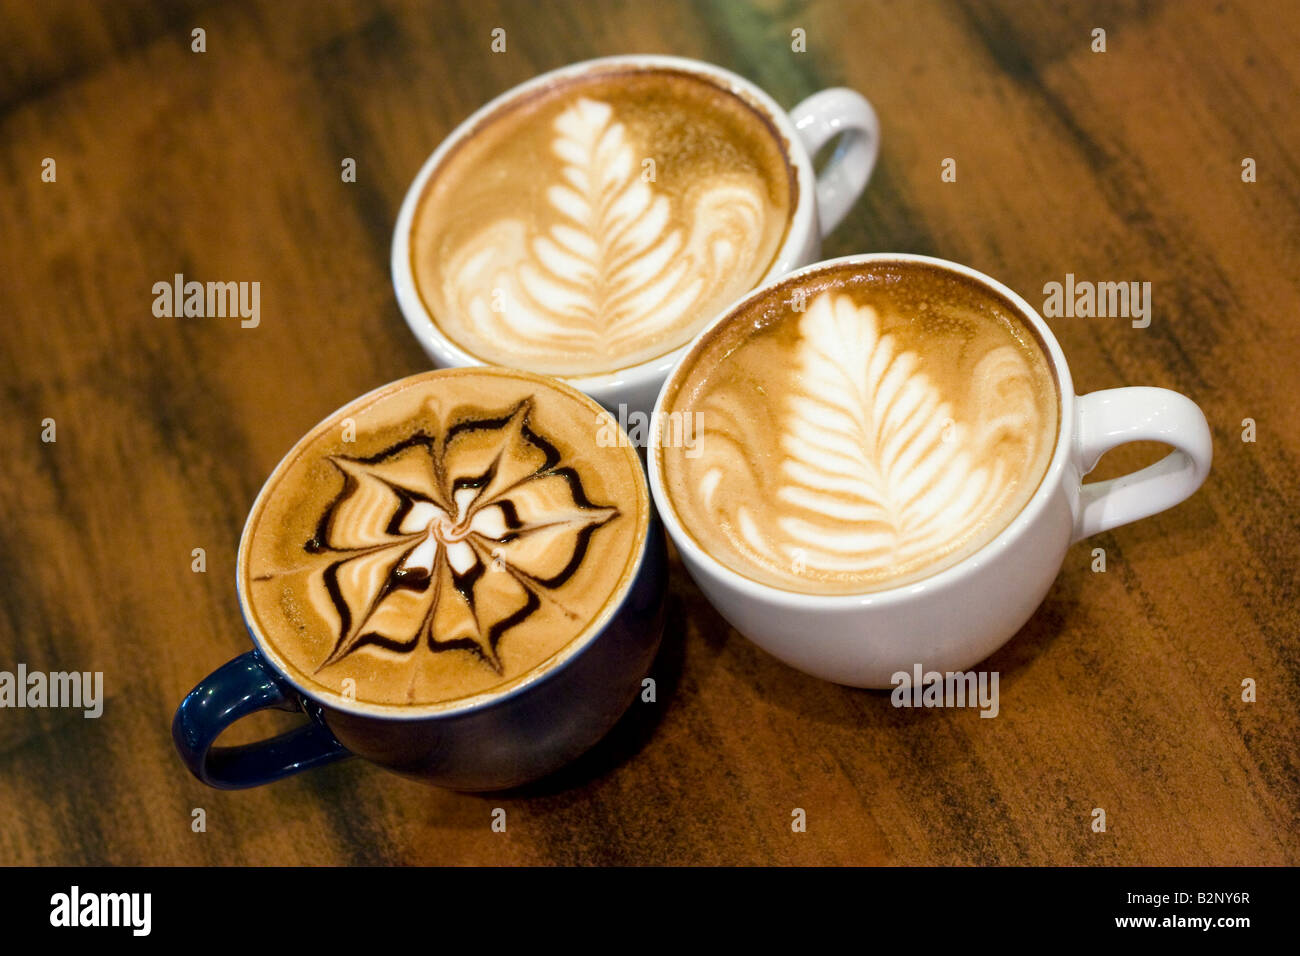 Cups with latte art by Barista s Daily Grind owner Ryan Dennhardt world champion of Ultimate Barista Challenge for - Stock Image